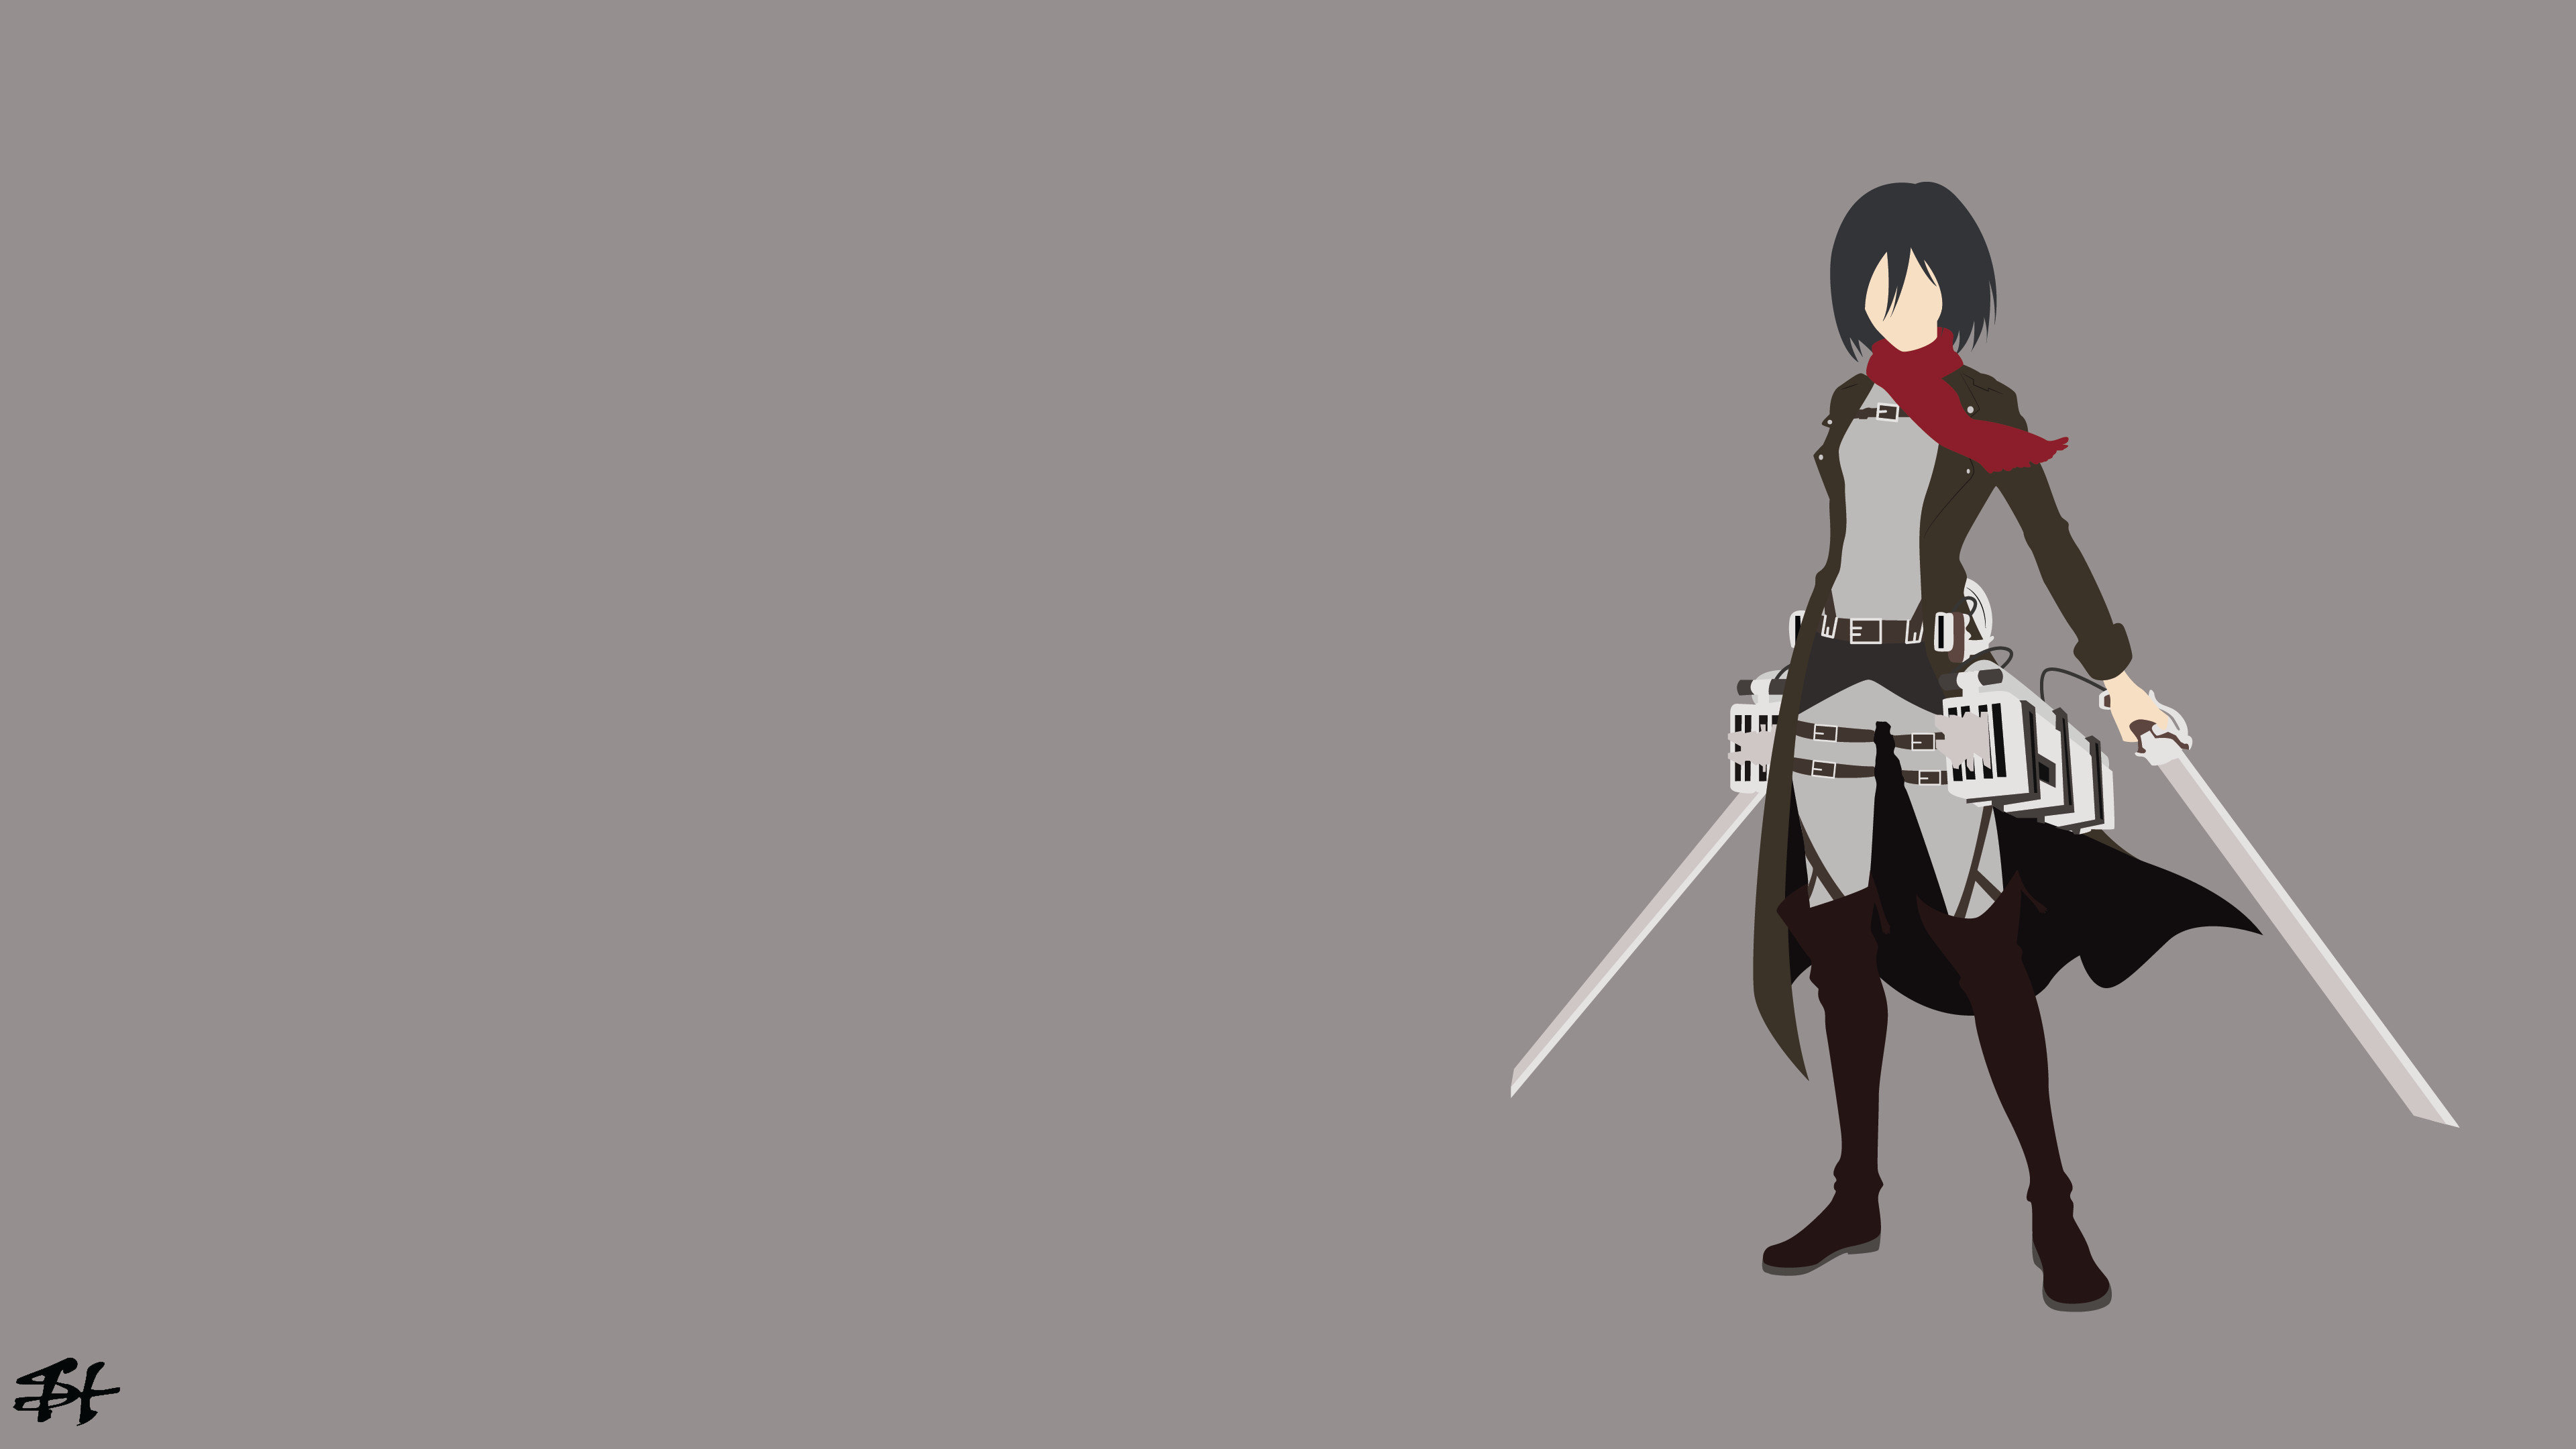 Awesome Mikasa Ackerman Free Wallpaper Id Attack On Titan Levi Wallpaper 4k 3840x2160 Wallpaper Teahub Io